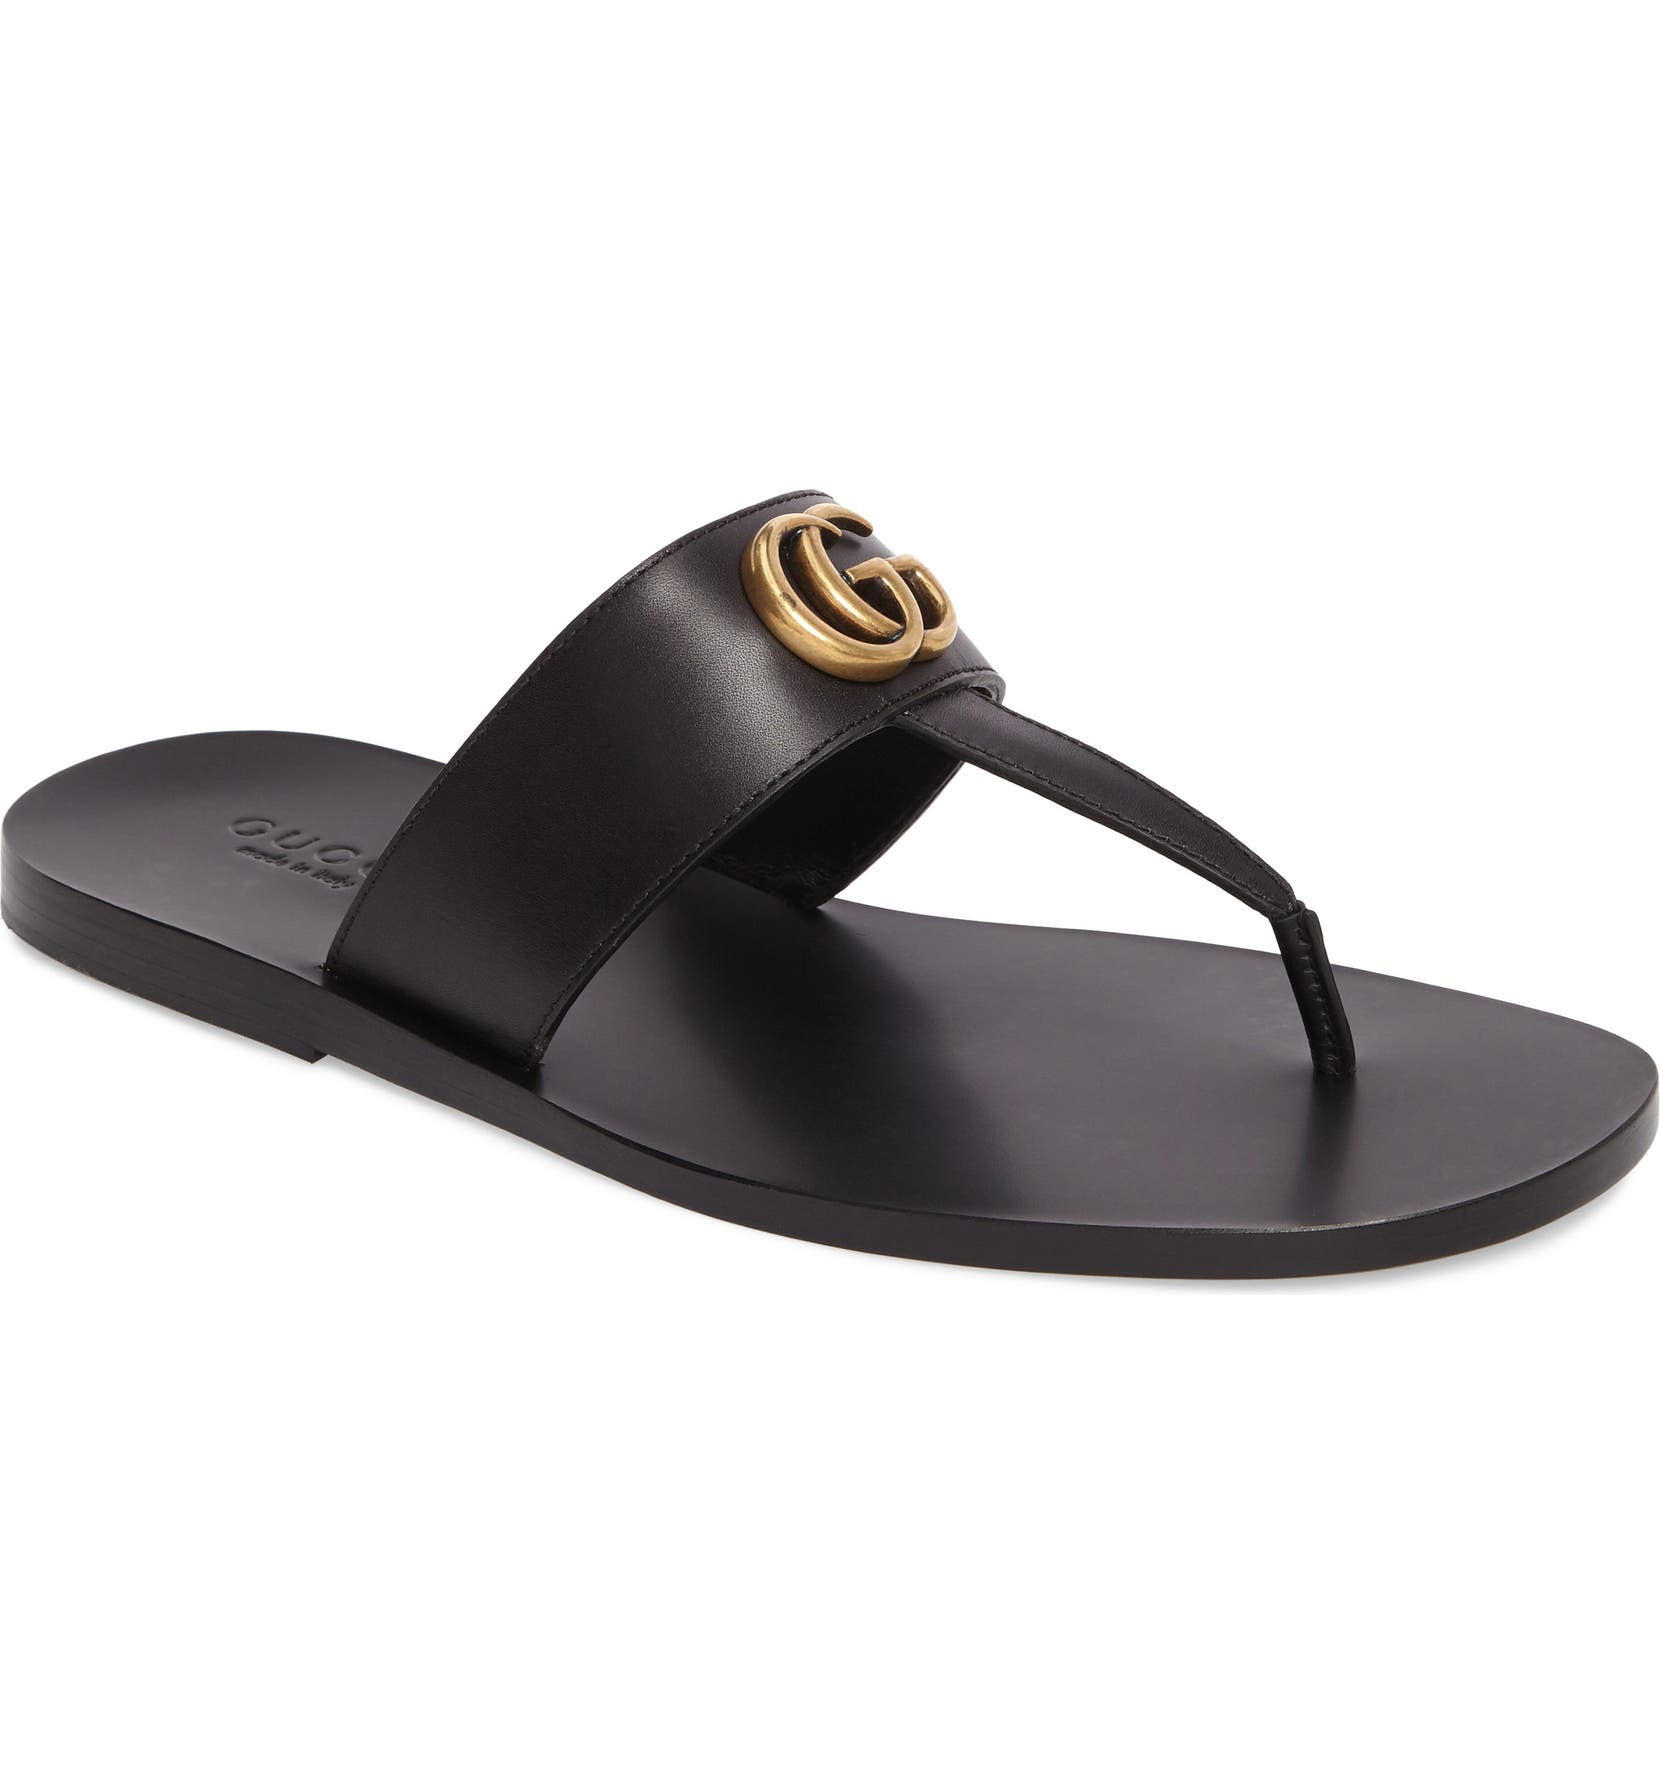 5b5612571b78 Gucci Marmont Double G Leather Thong Sandal (Men)